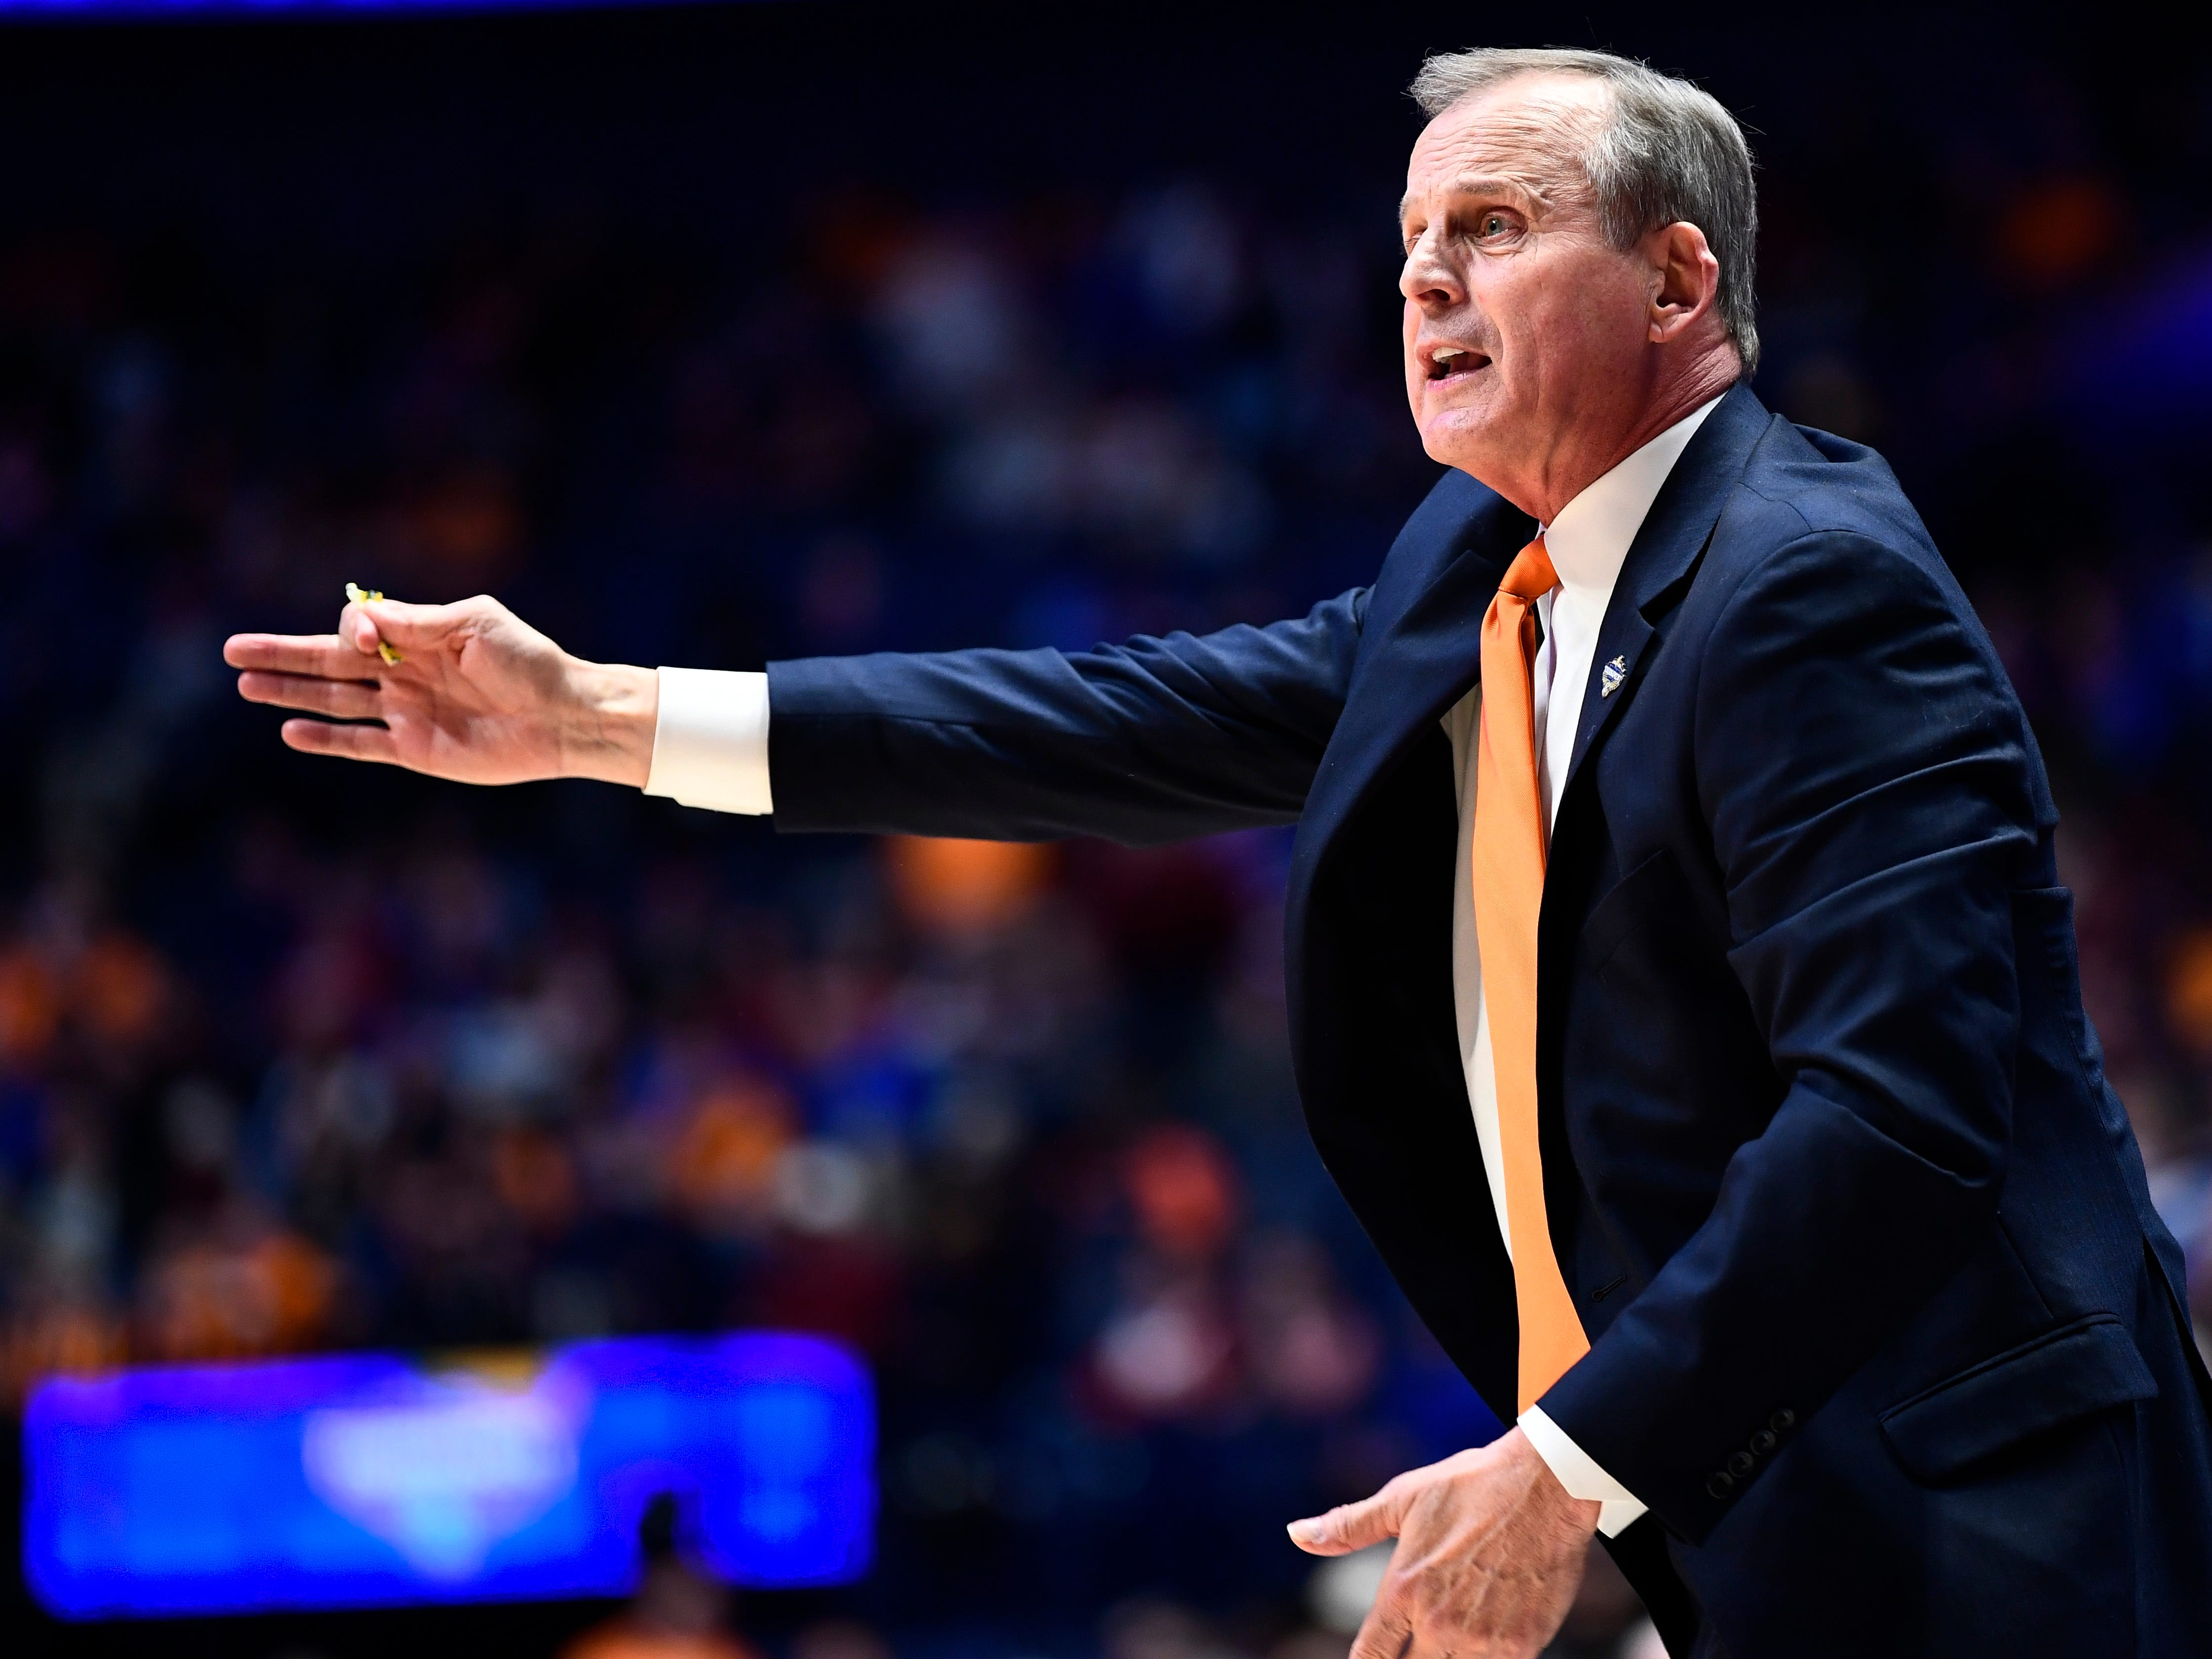 Tennessee head coach Rick Barnes instructs his team during the first half of the SEC Men's Basketball Tournament game against Mississippi State at Bridgestone Arena in Nashville, Tenn., Friday, March 15, 2019.